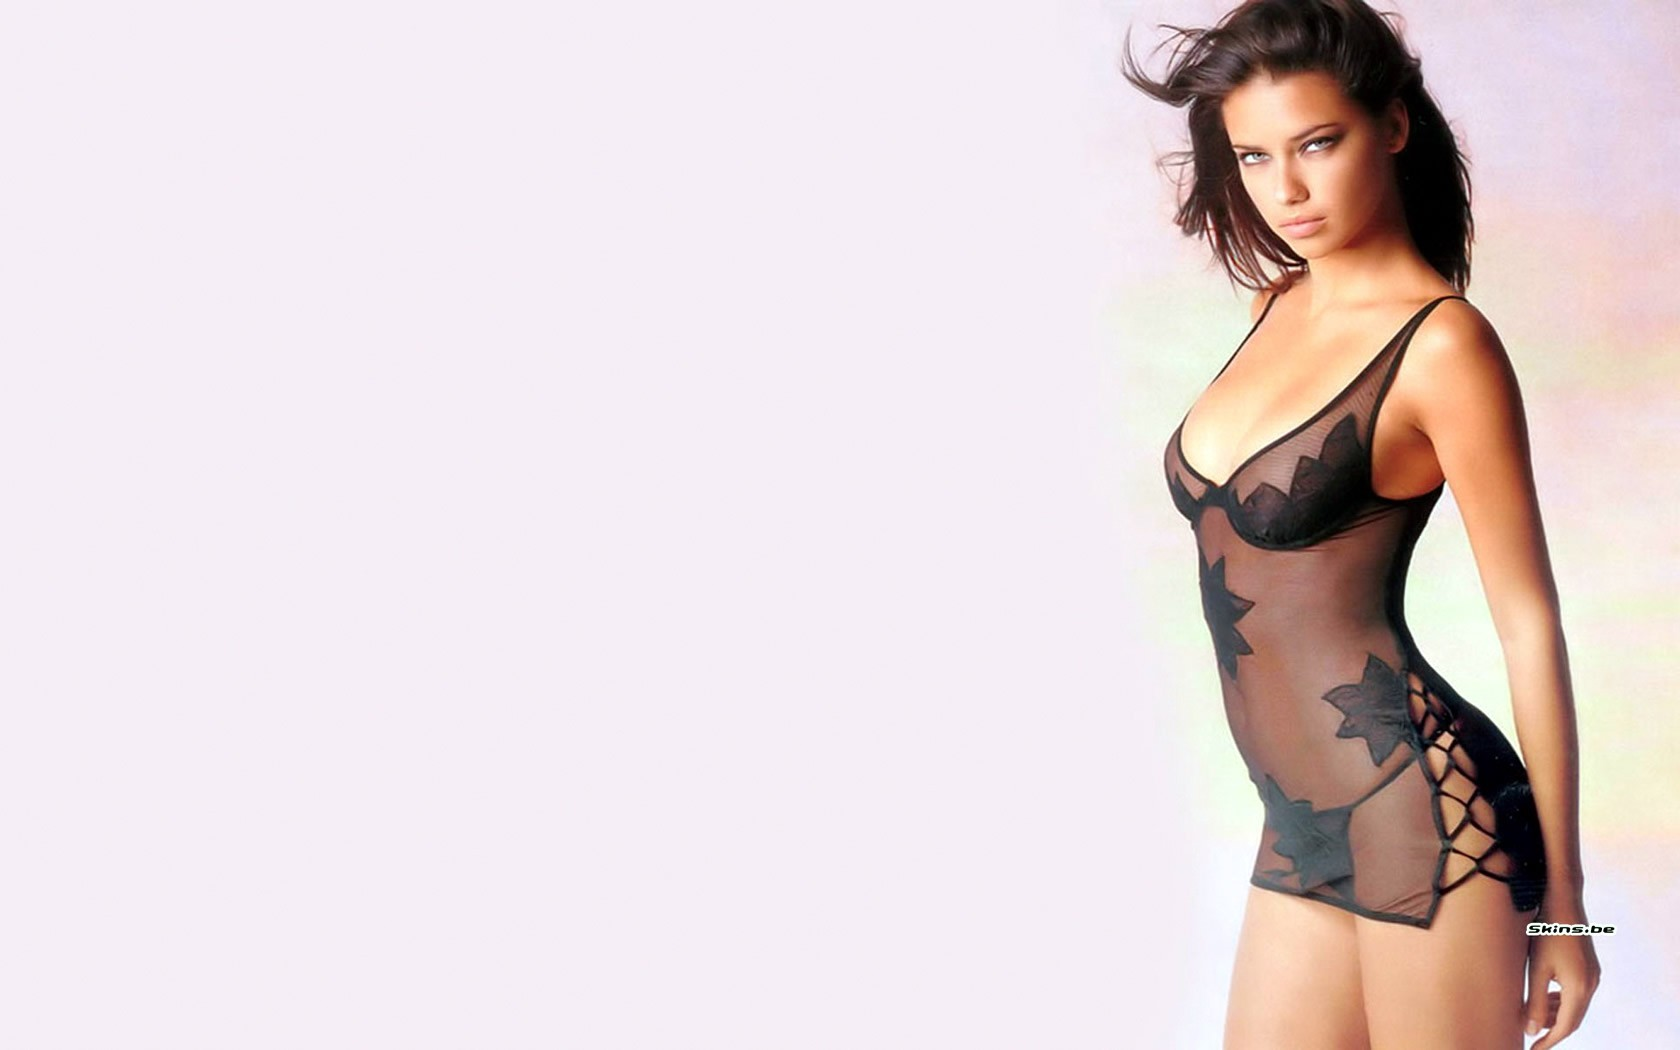 woman lingerie brunettes adriana lima HD Wallpaper